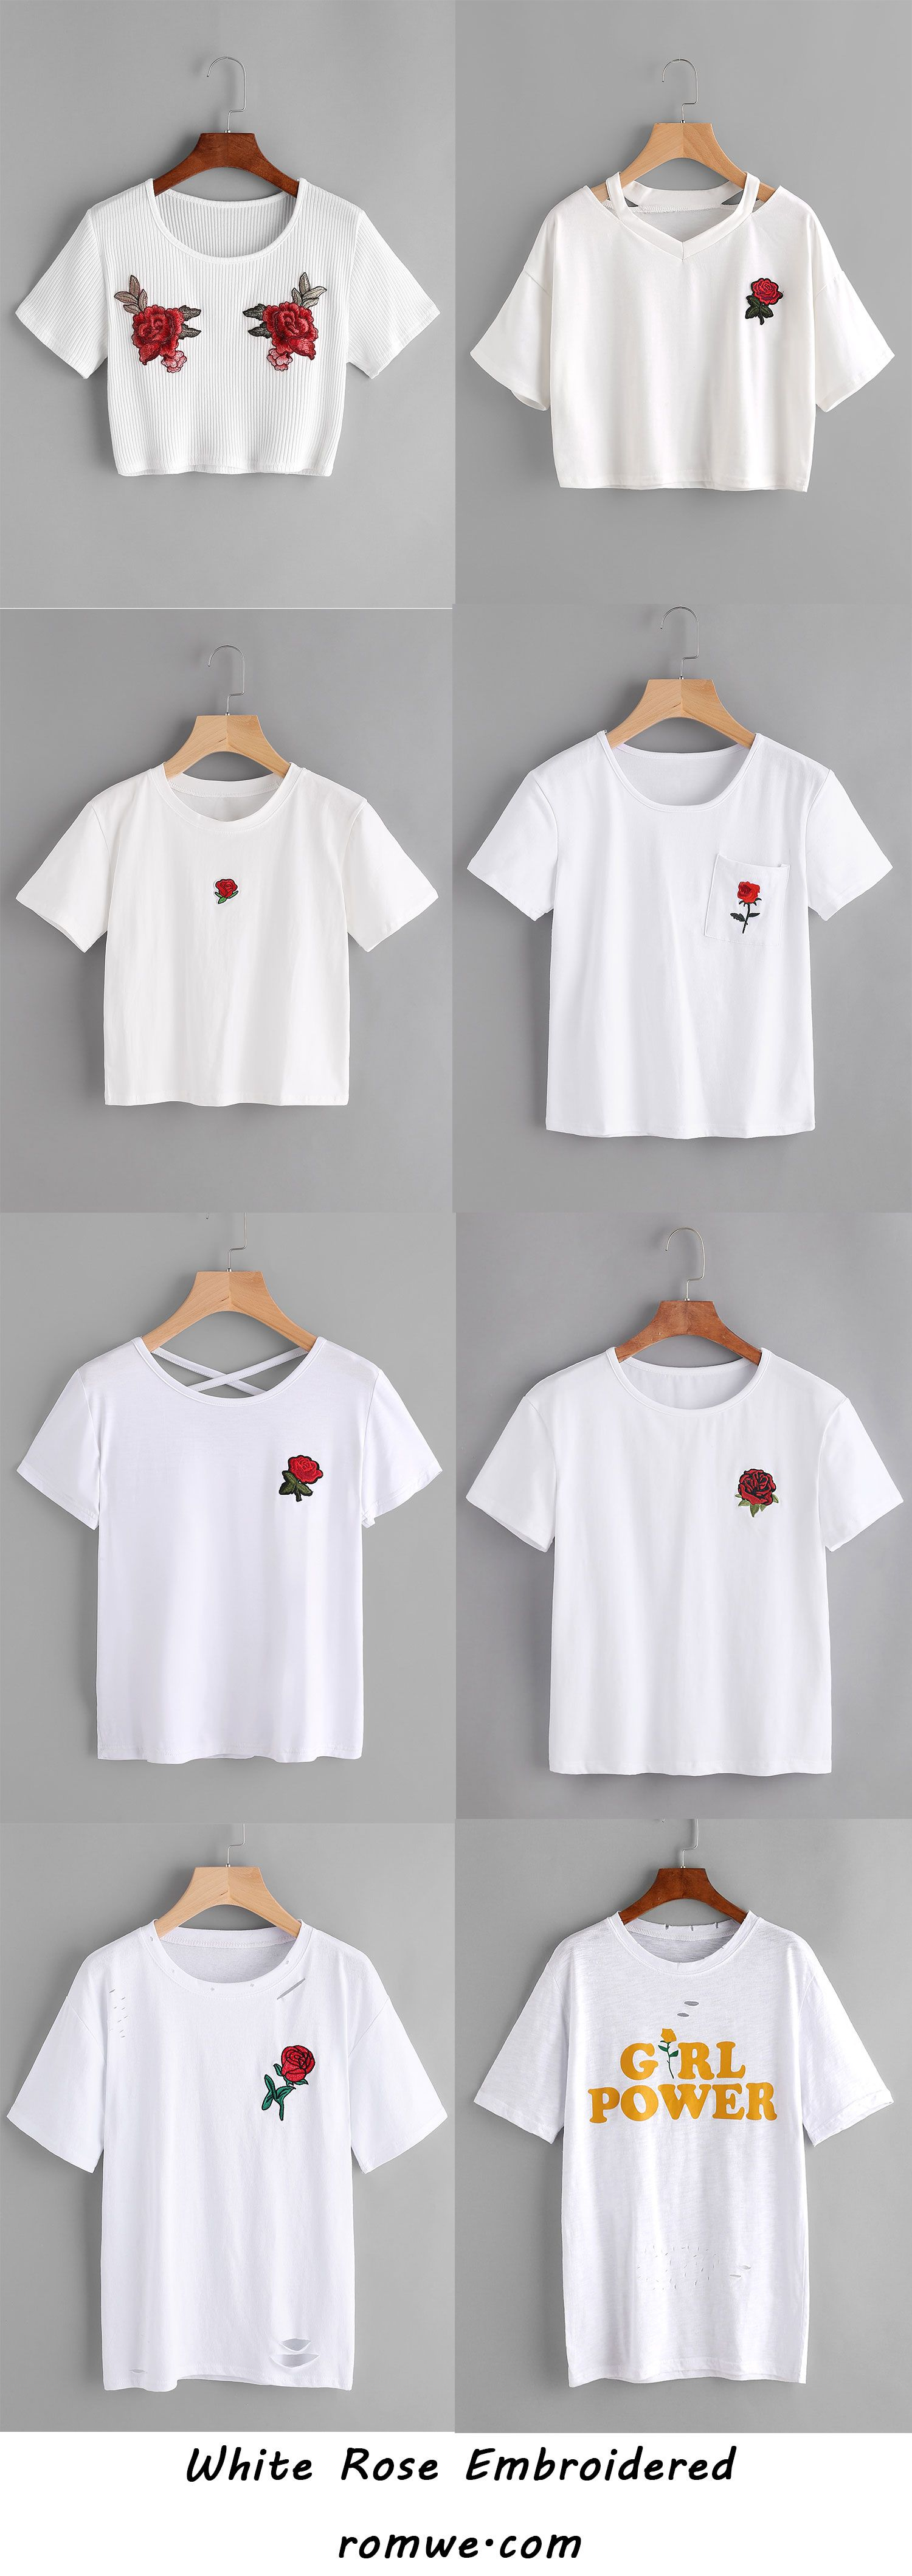 White Rose Embroidered Tops from romwe.com